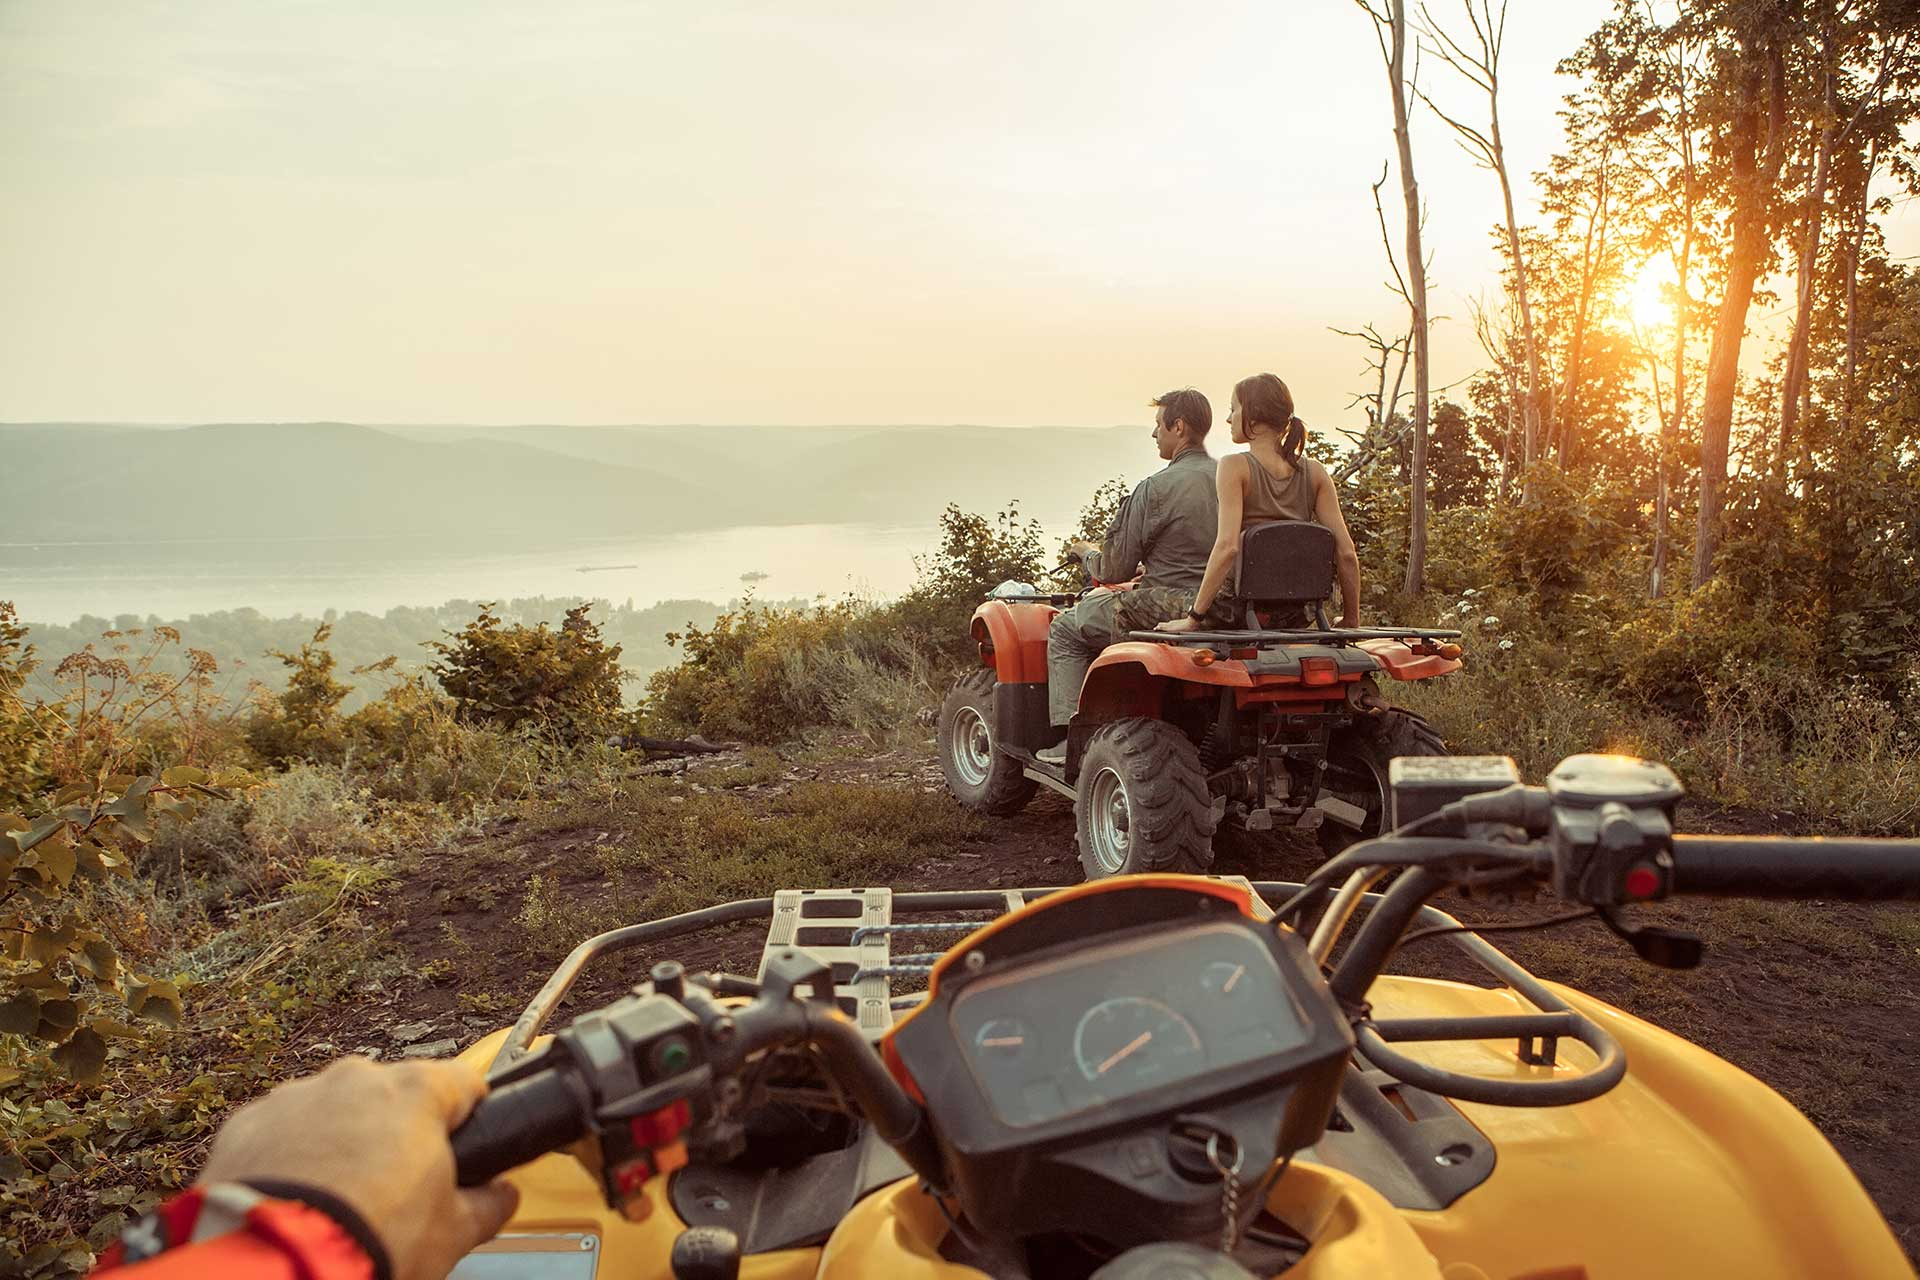 Fourwheeling-is-one-of-several-recreational-pursuits-that-Americans-pursue-with-gusto